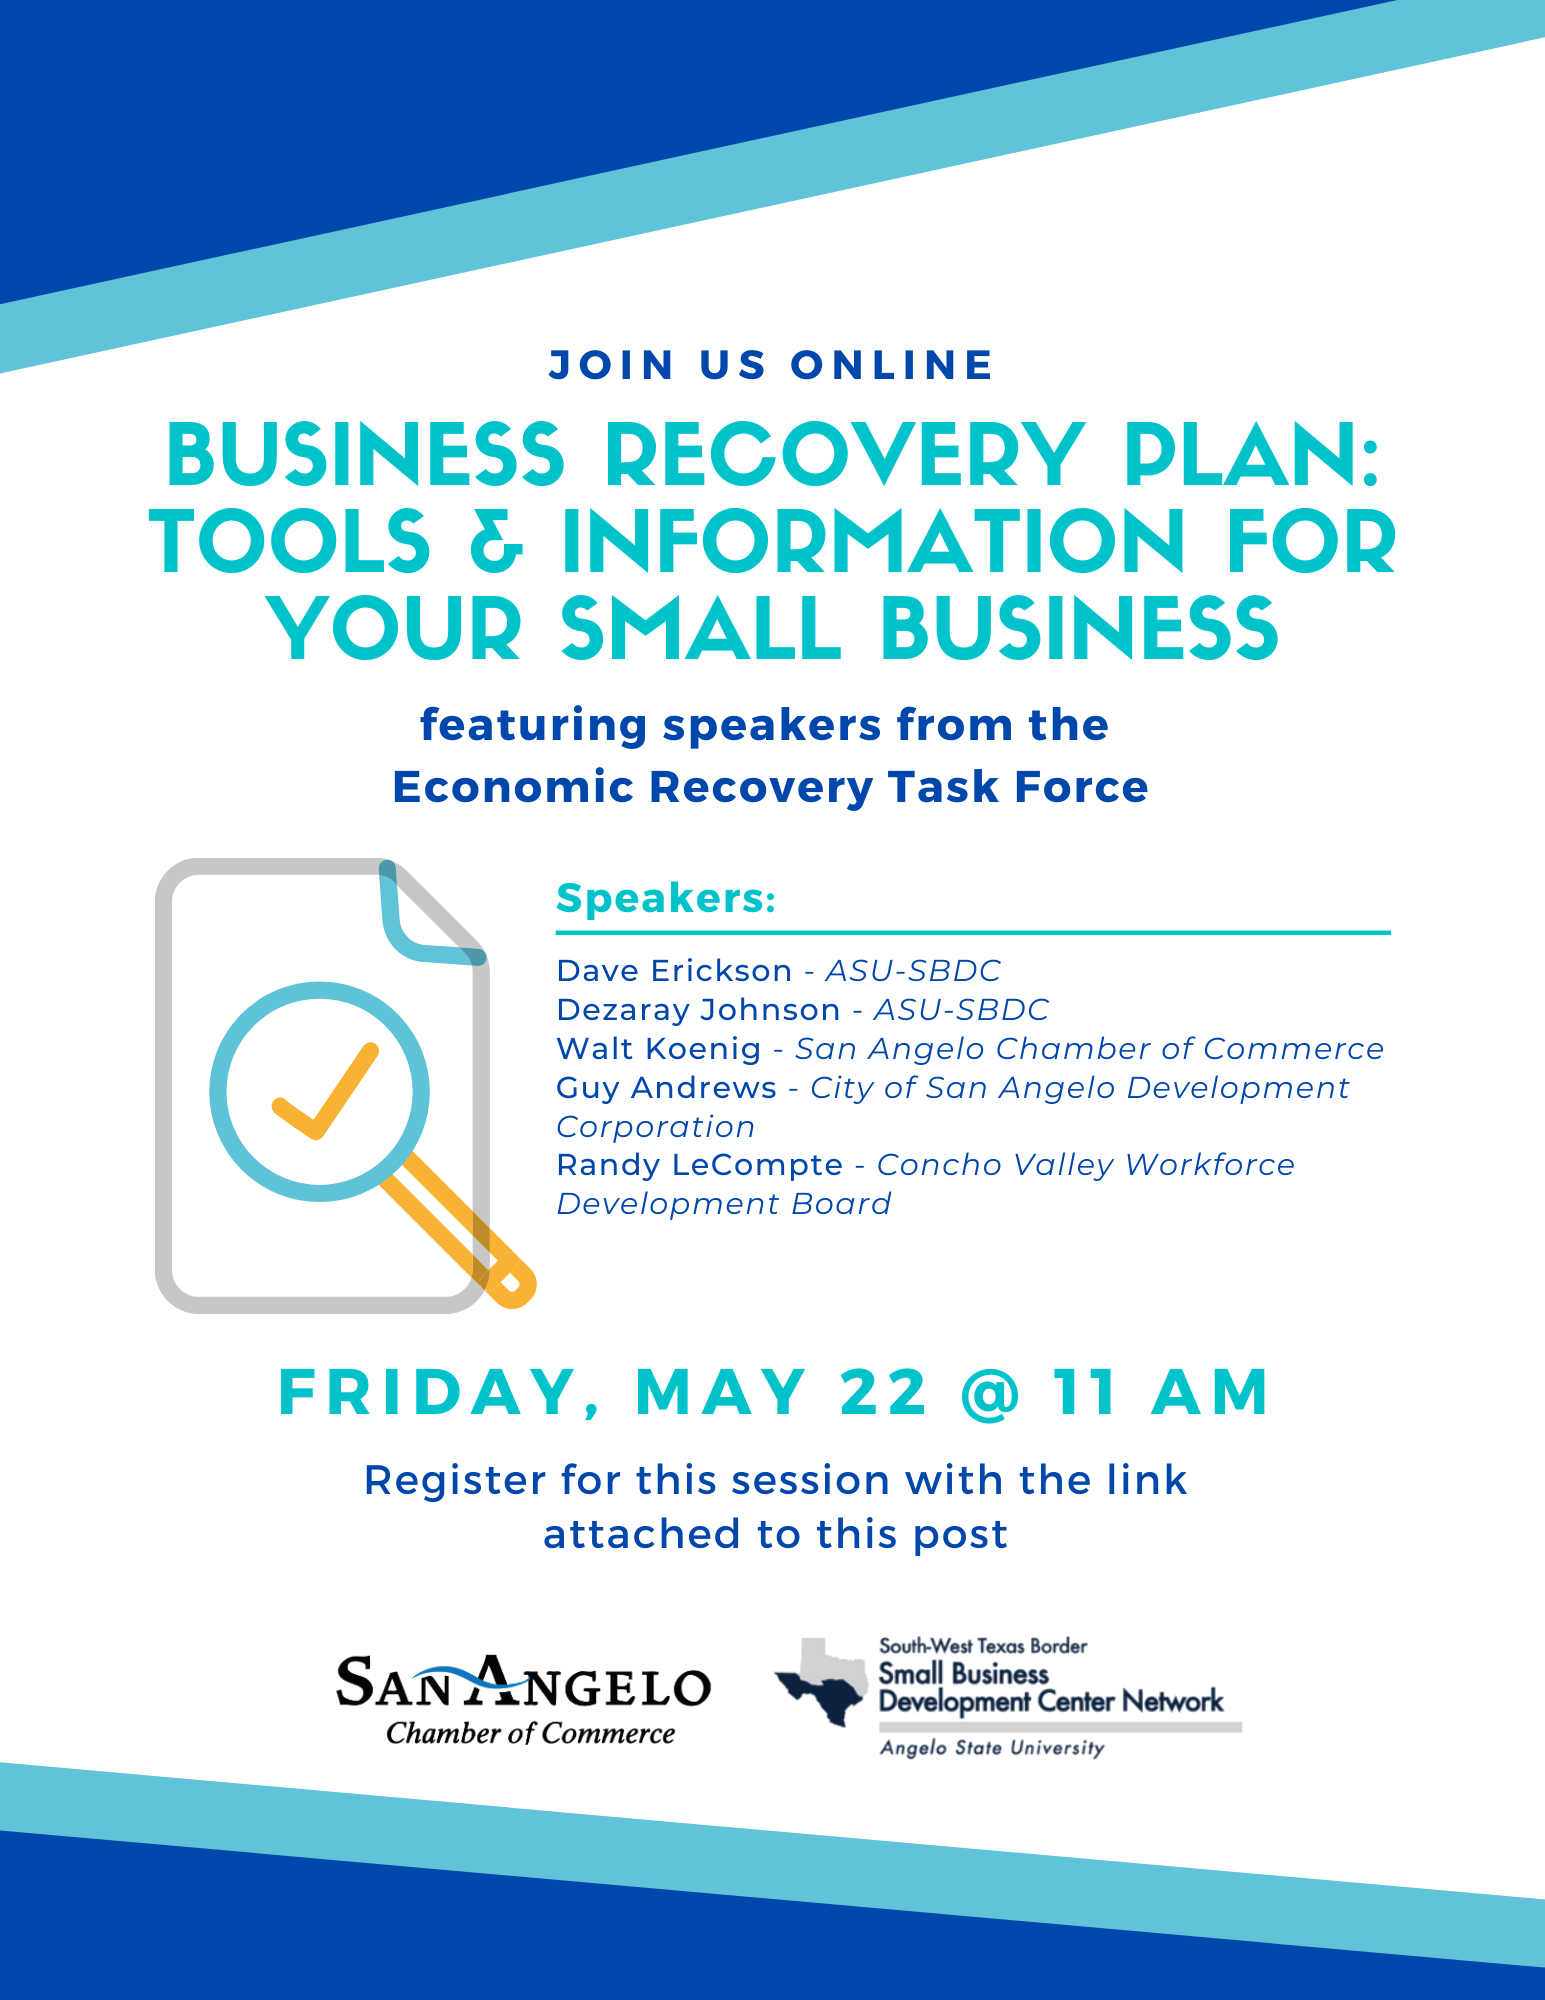 Business Recovery Plan Webinar Flyer with Speakers